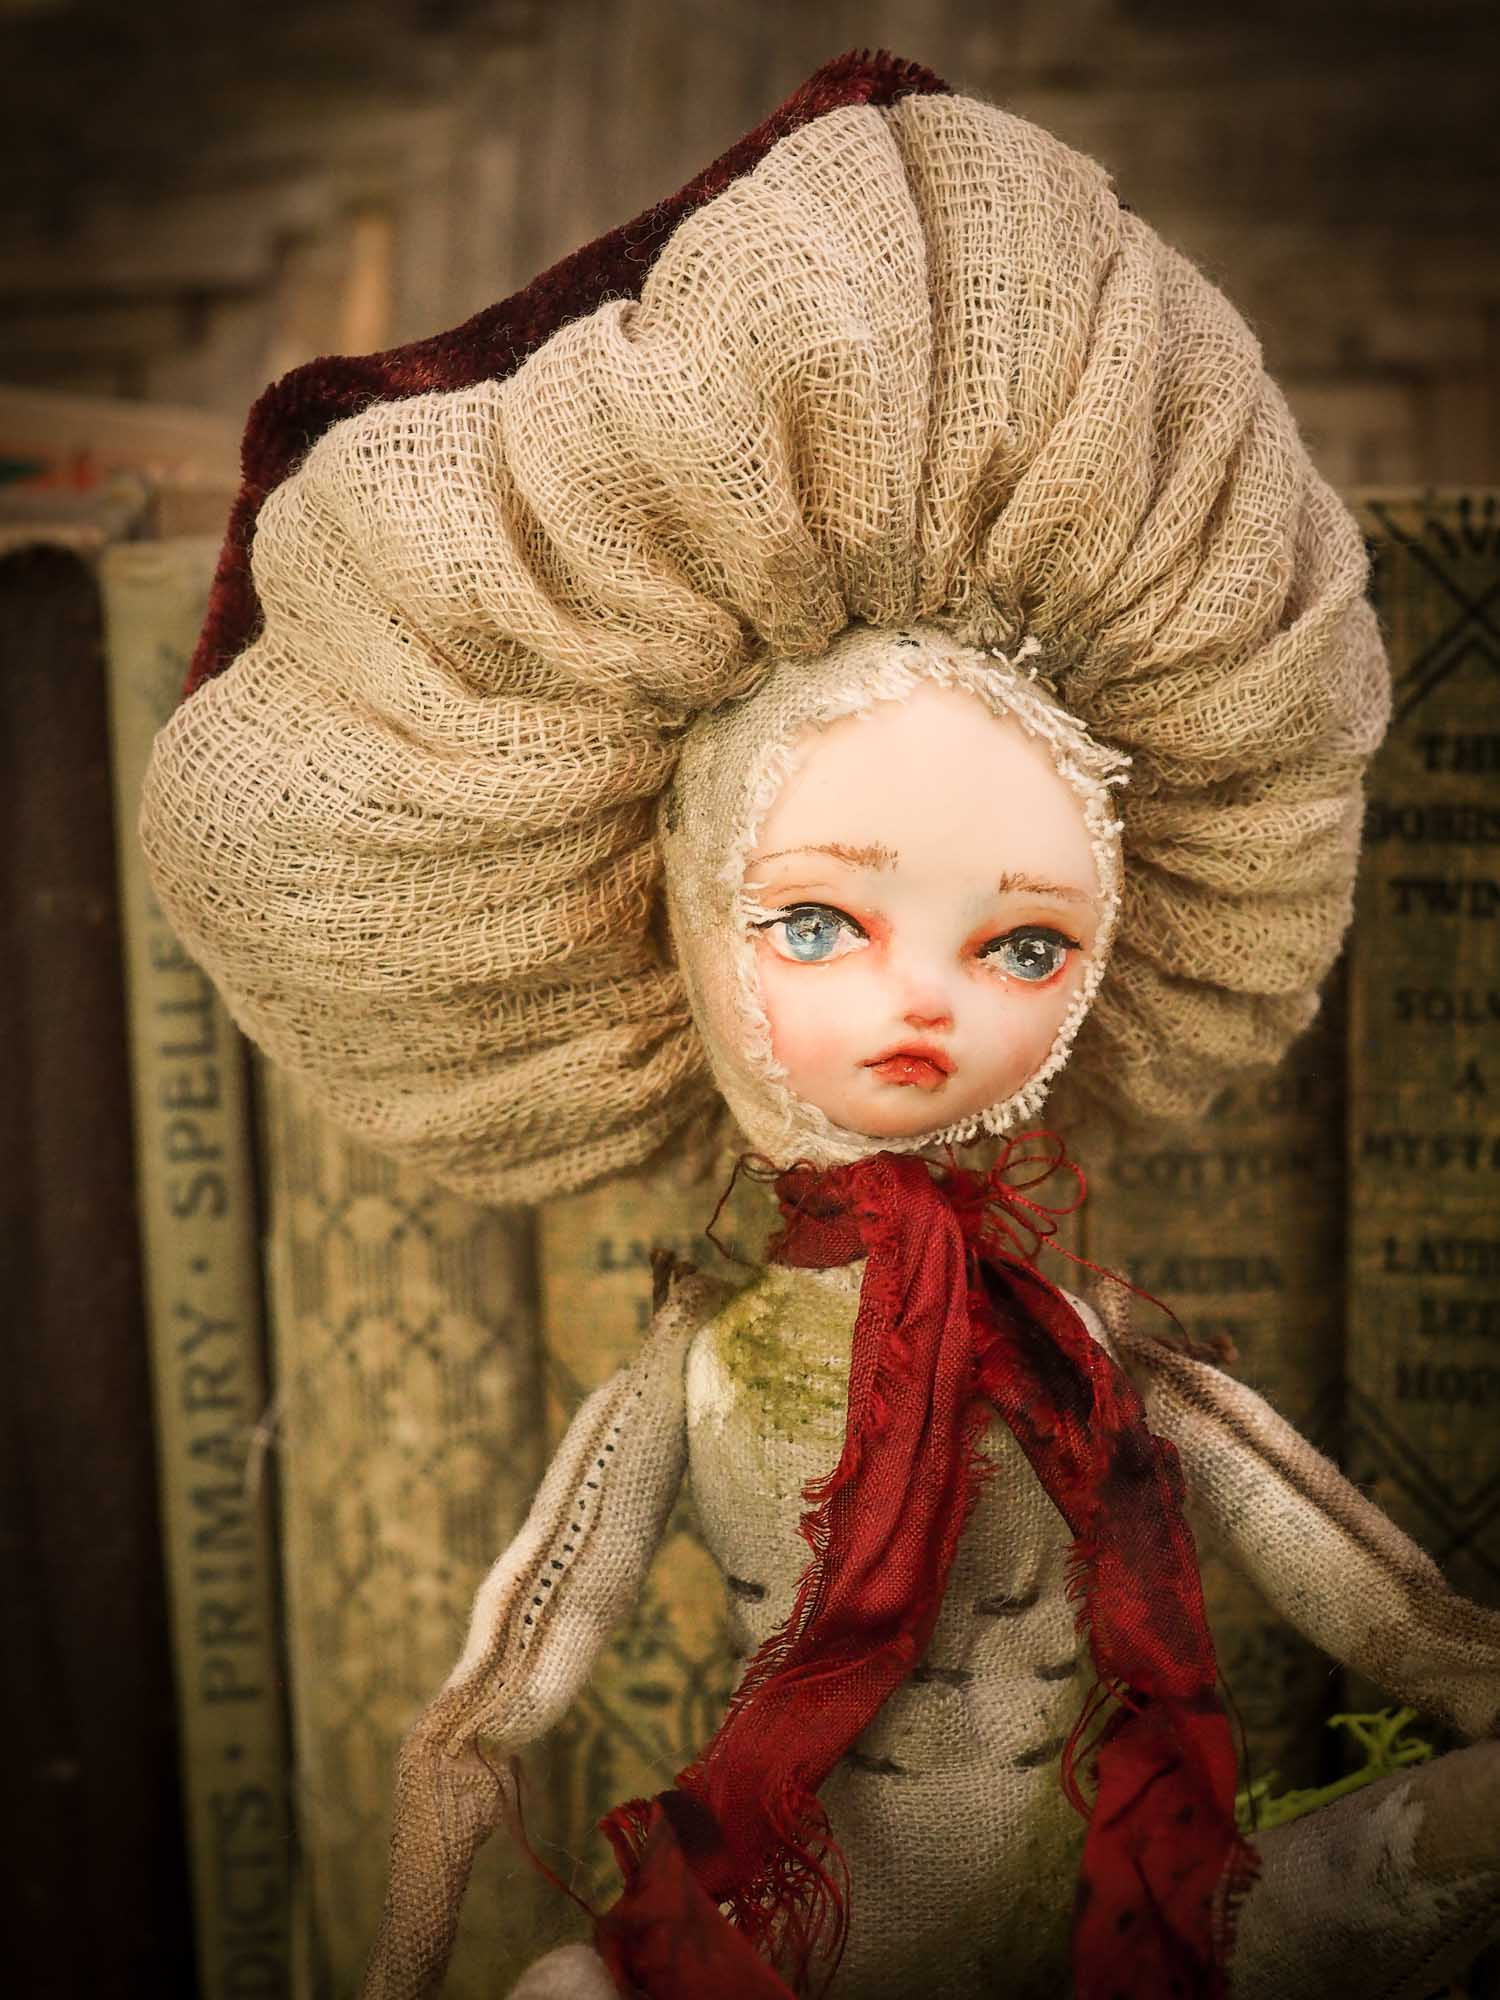 An original forest fairy mushroom fungi toadstool girl art doll handmade by Danita Art, using with original patterns, organic fabric dyed using only natural ingredients like avocado peels, walnuts and marigolds. Each mini art doll in this toy collection is a mini work of huggable fabric art that will be treasured by any collector of Danita's melancholic and fantastic work.